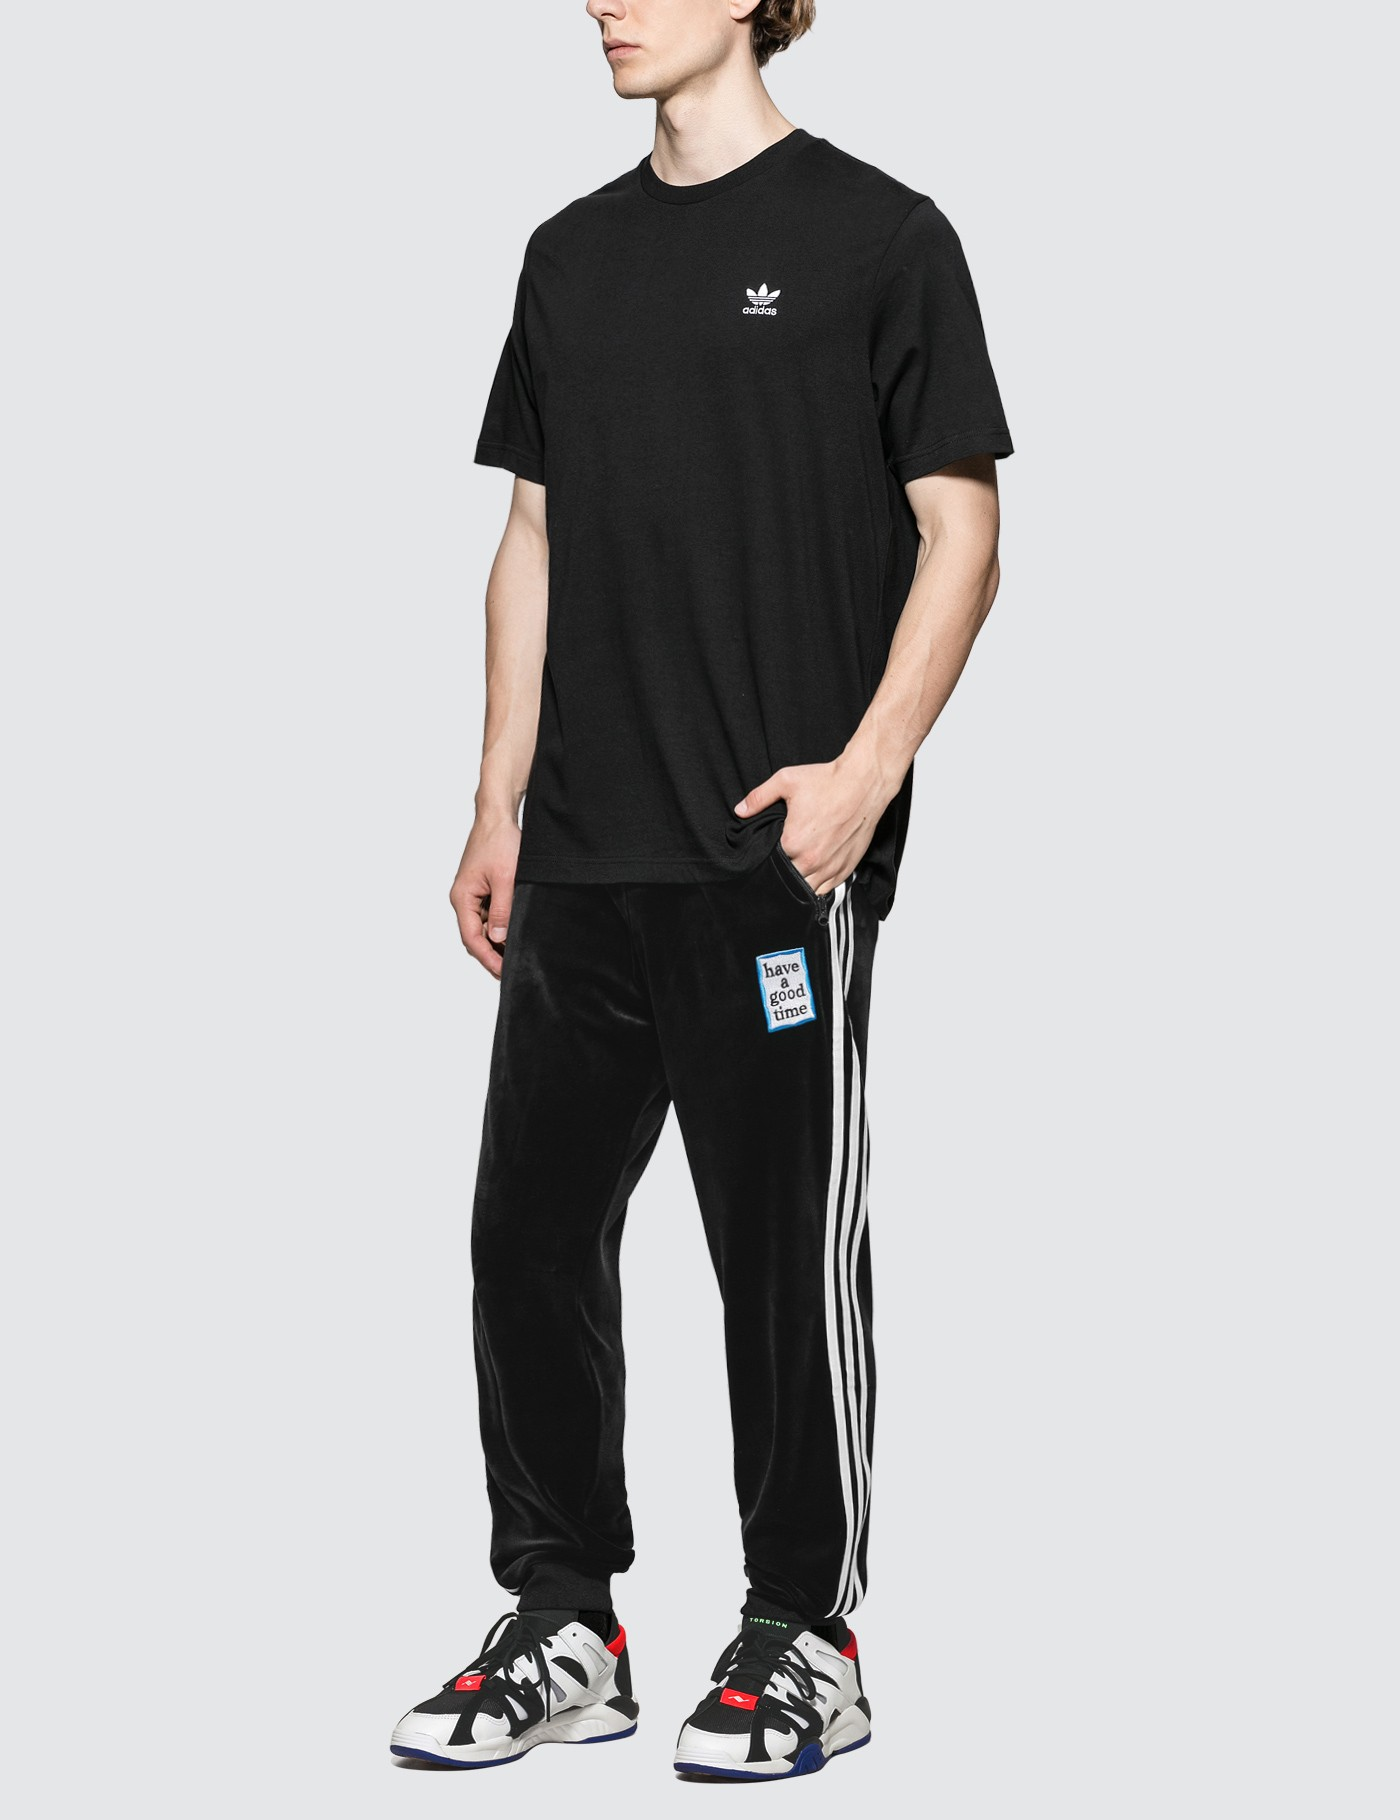 Adidas Originals Essential S/S T-Shirt